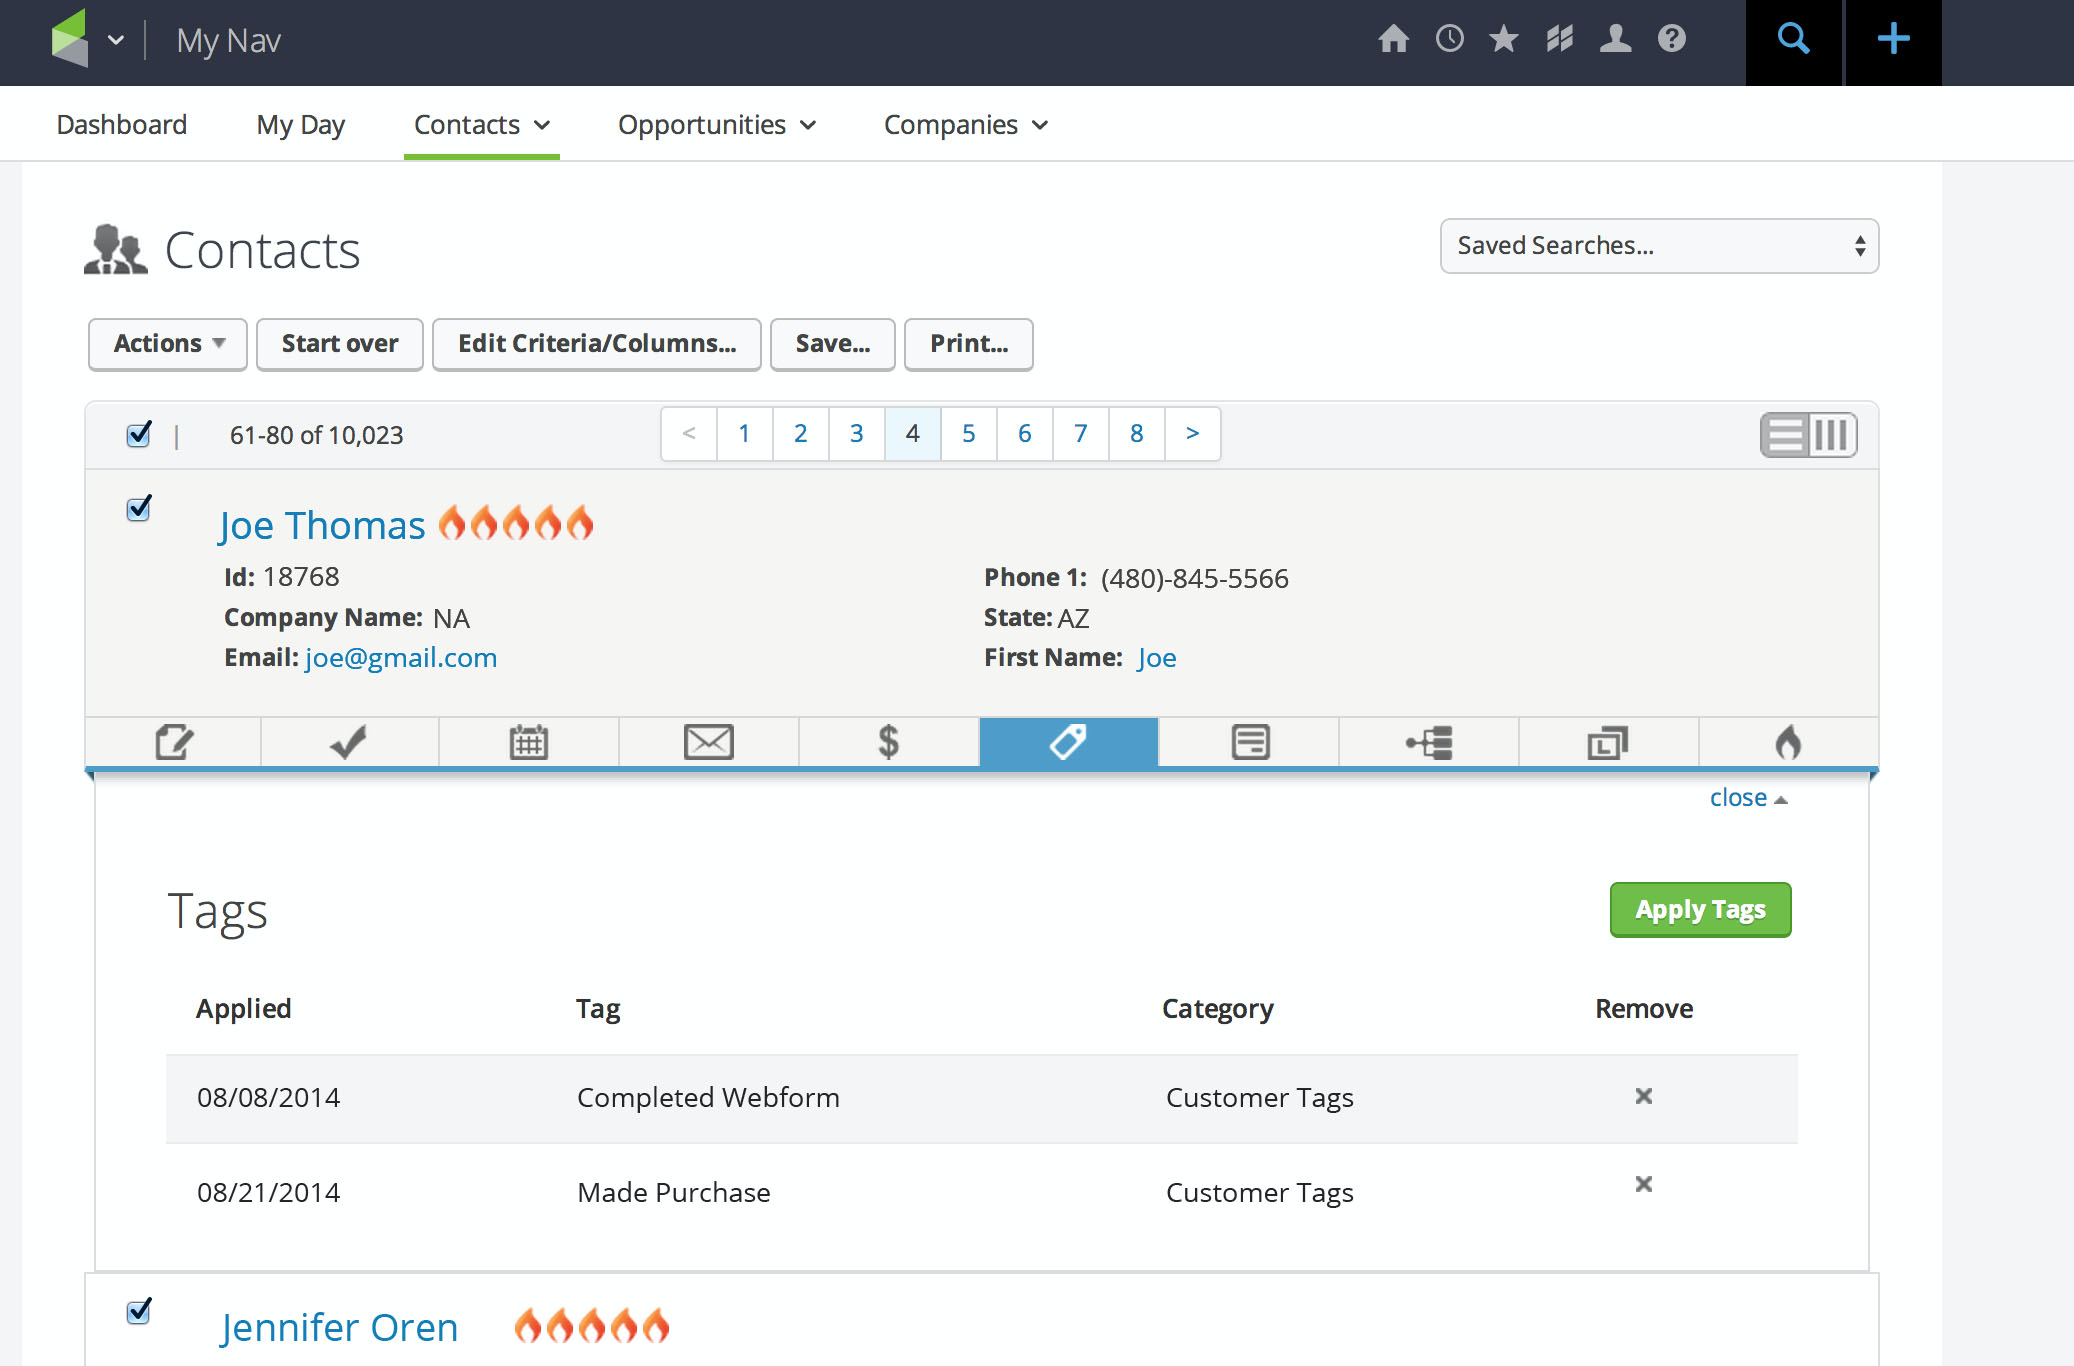 Contact records in Infusionsoft's CRM